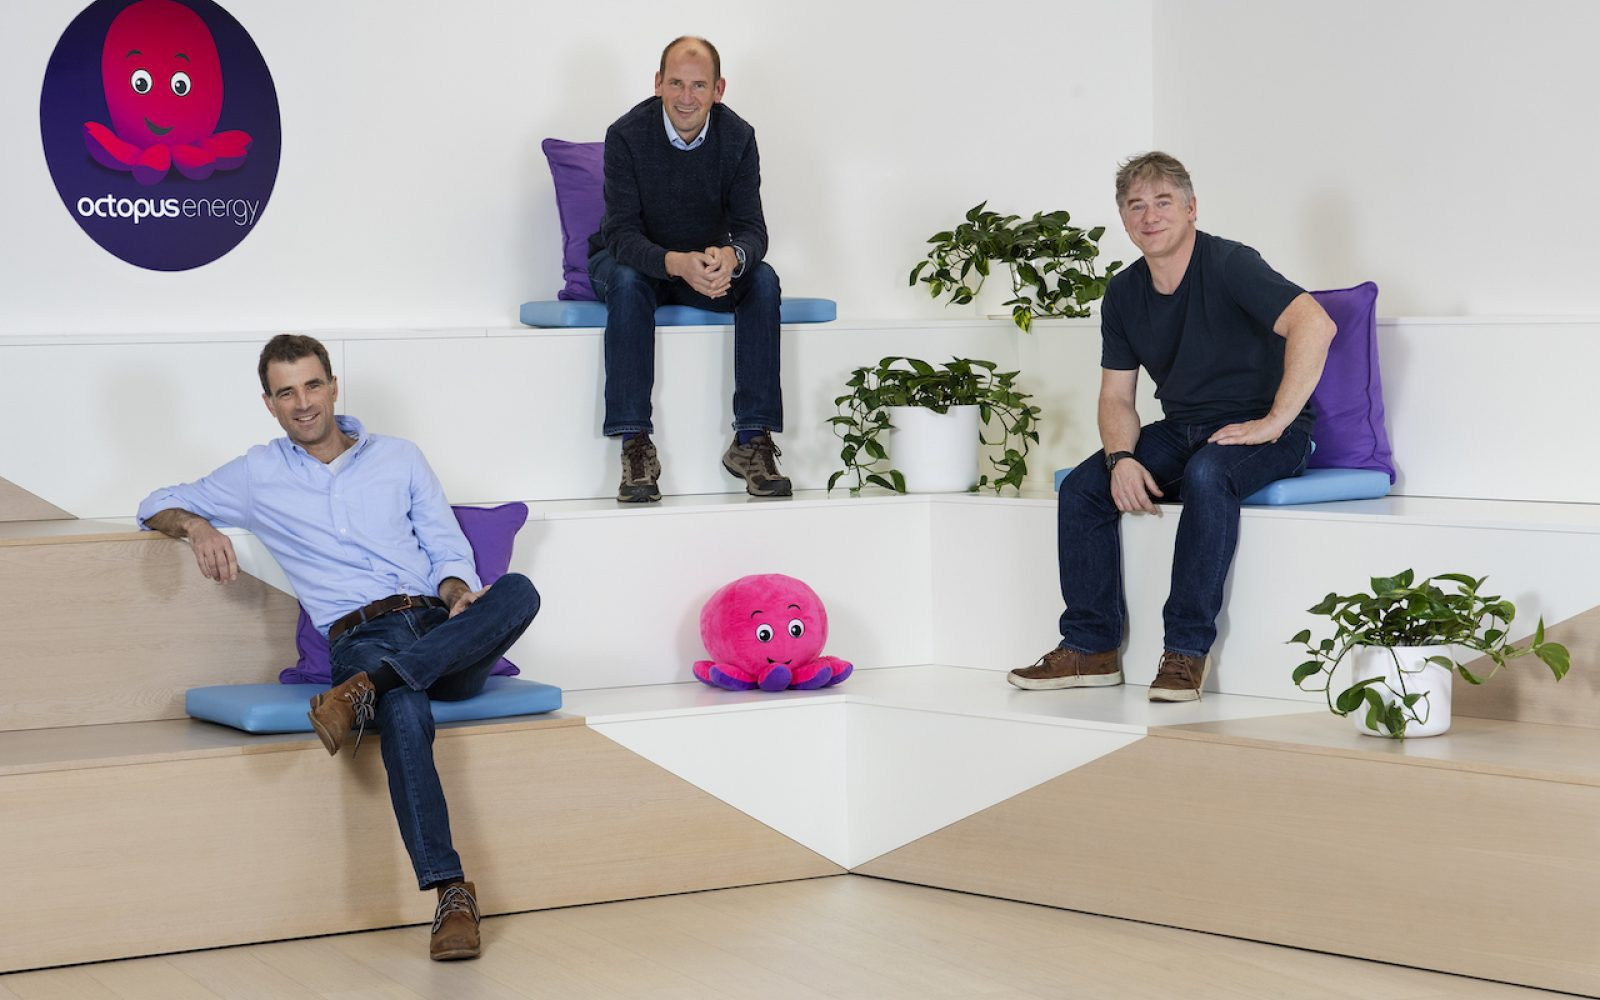 Octopus Energy was set up five years ago, and has since grown to have over 3 million customers. Image: Octopus Energy.